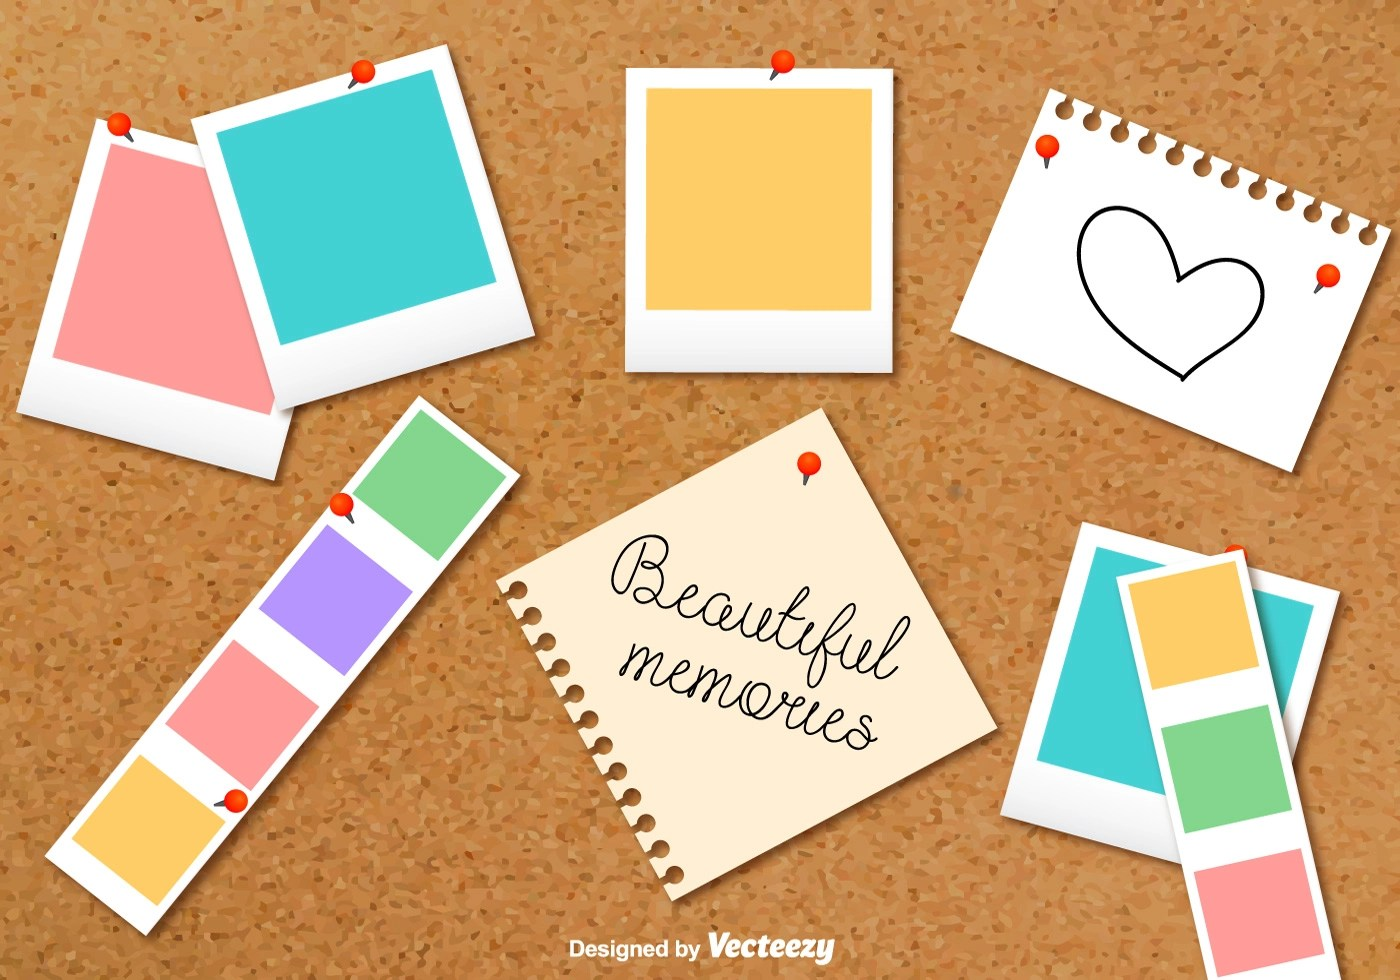 Cardboard Photo Collage Vector Background Download Free